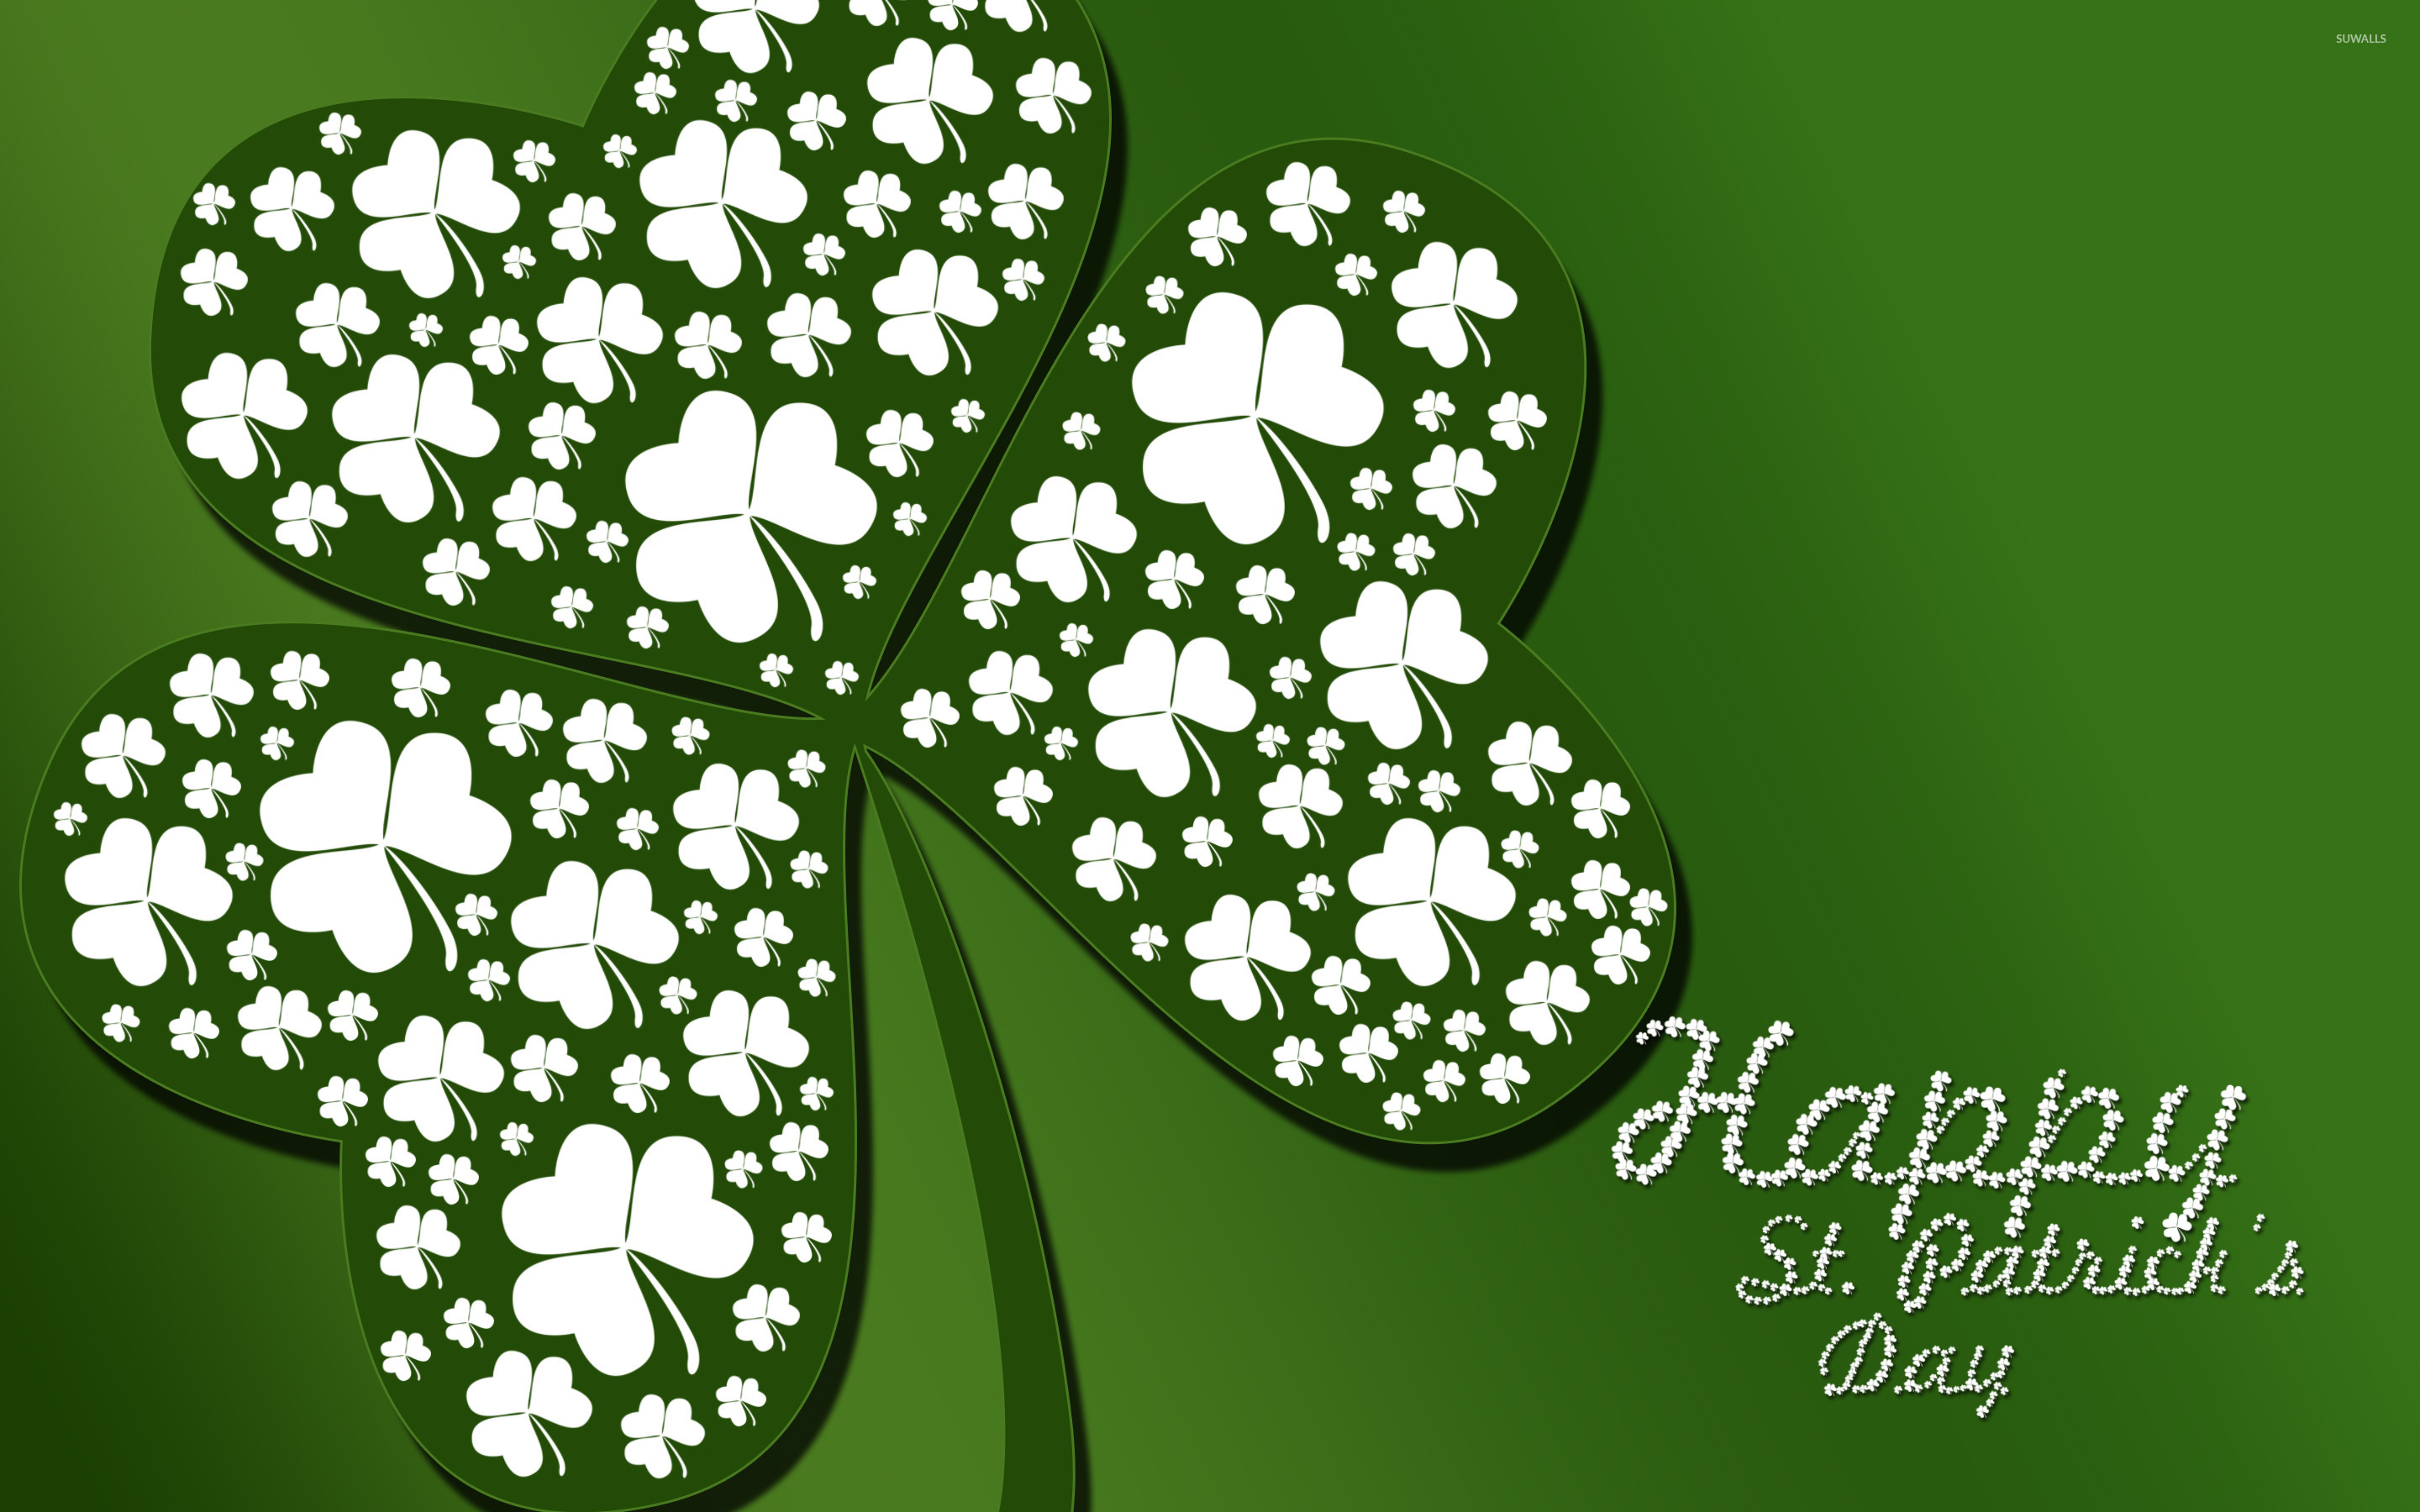 St Patricks Day Wallpaper Holiday Wallpapers 39523